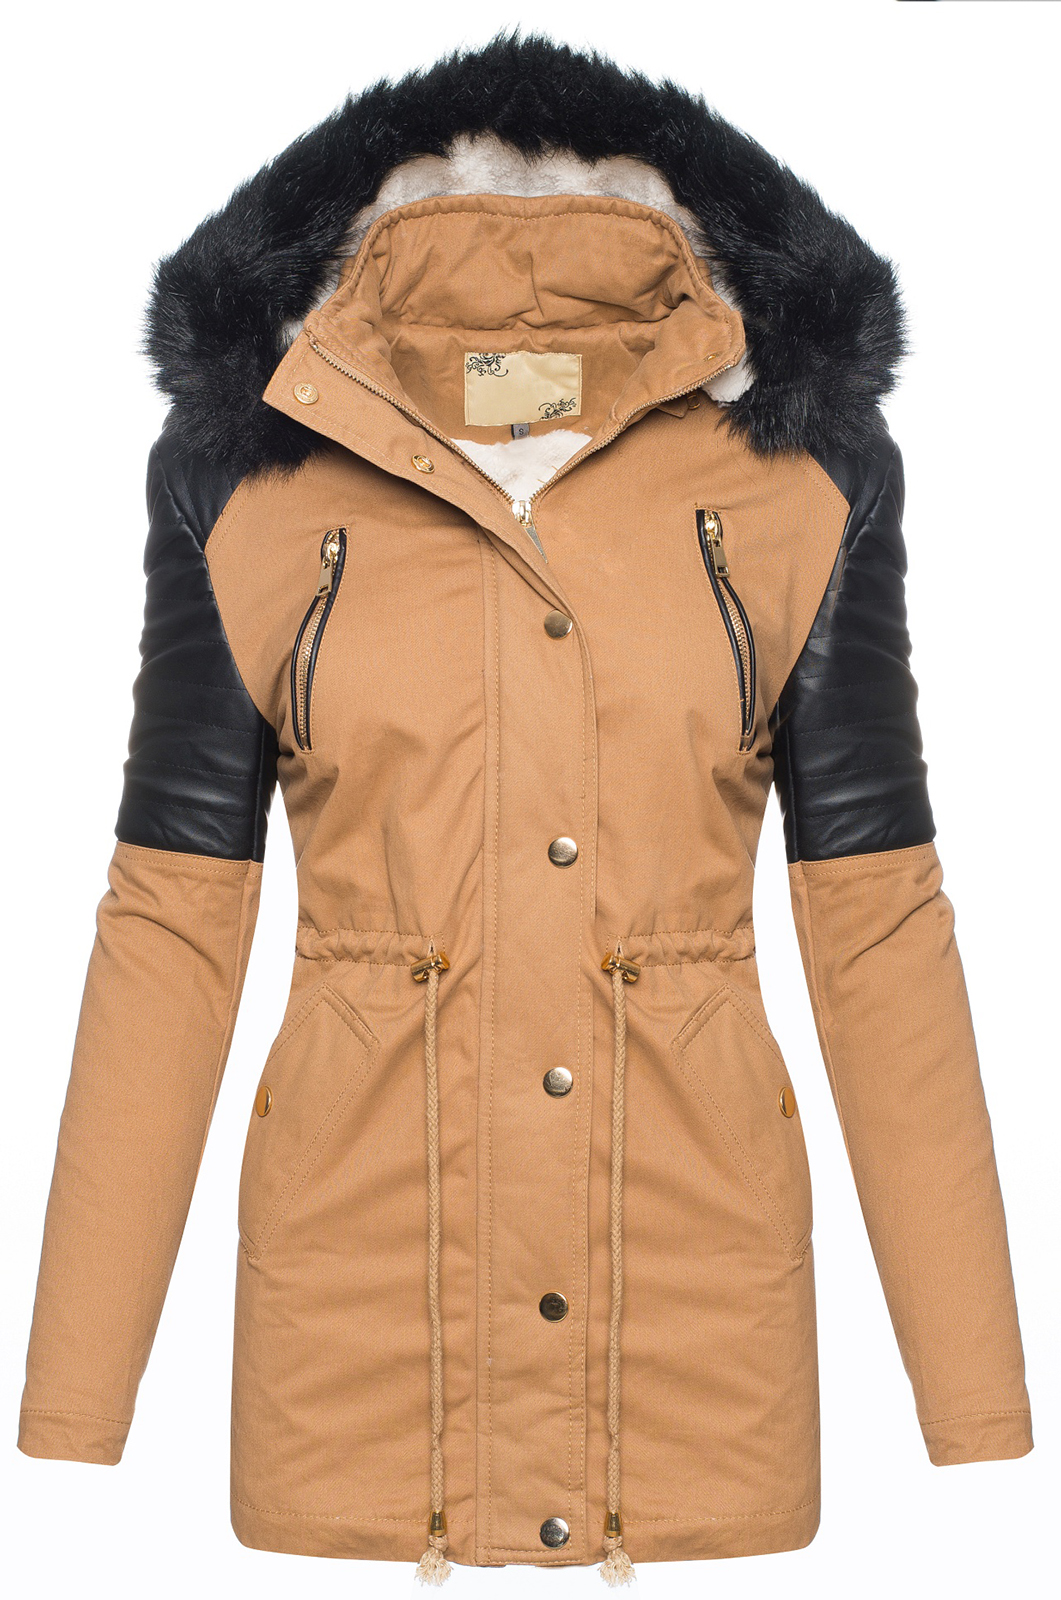 damen winter jacke damenjacke parka mit teddyfell gef ttert kapuze winterjacke ebay. Black Bedroom Furniture Sets. Home Design Ideas